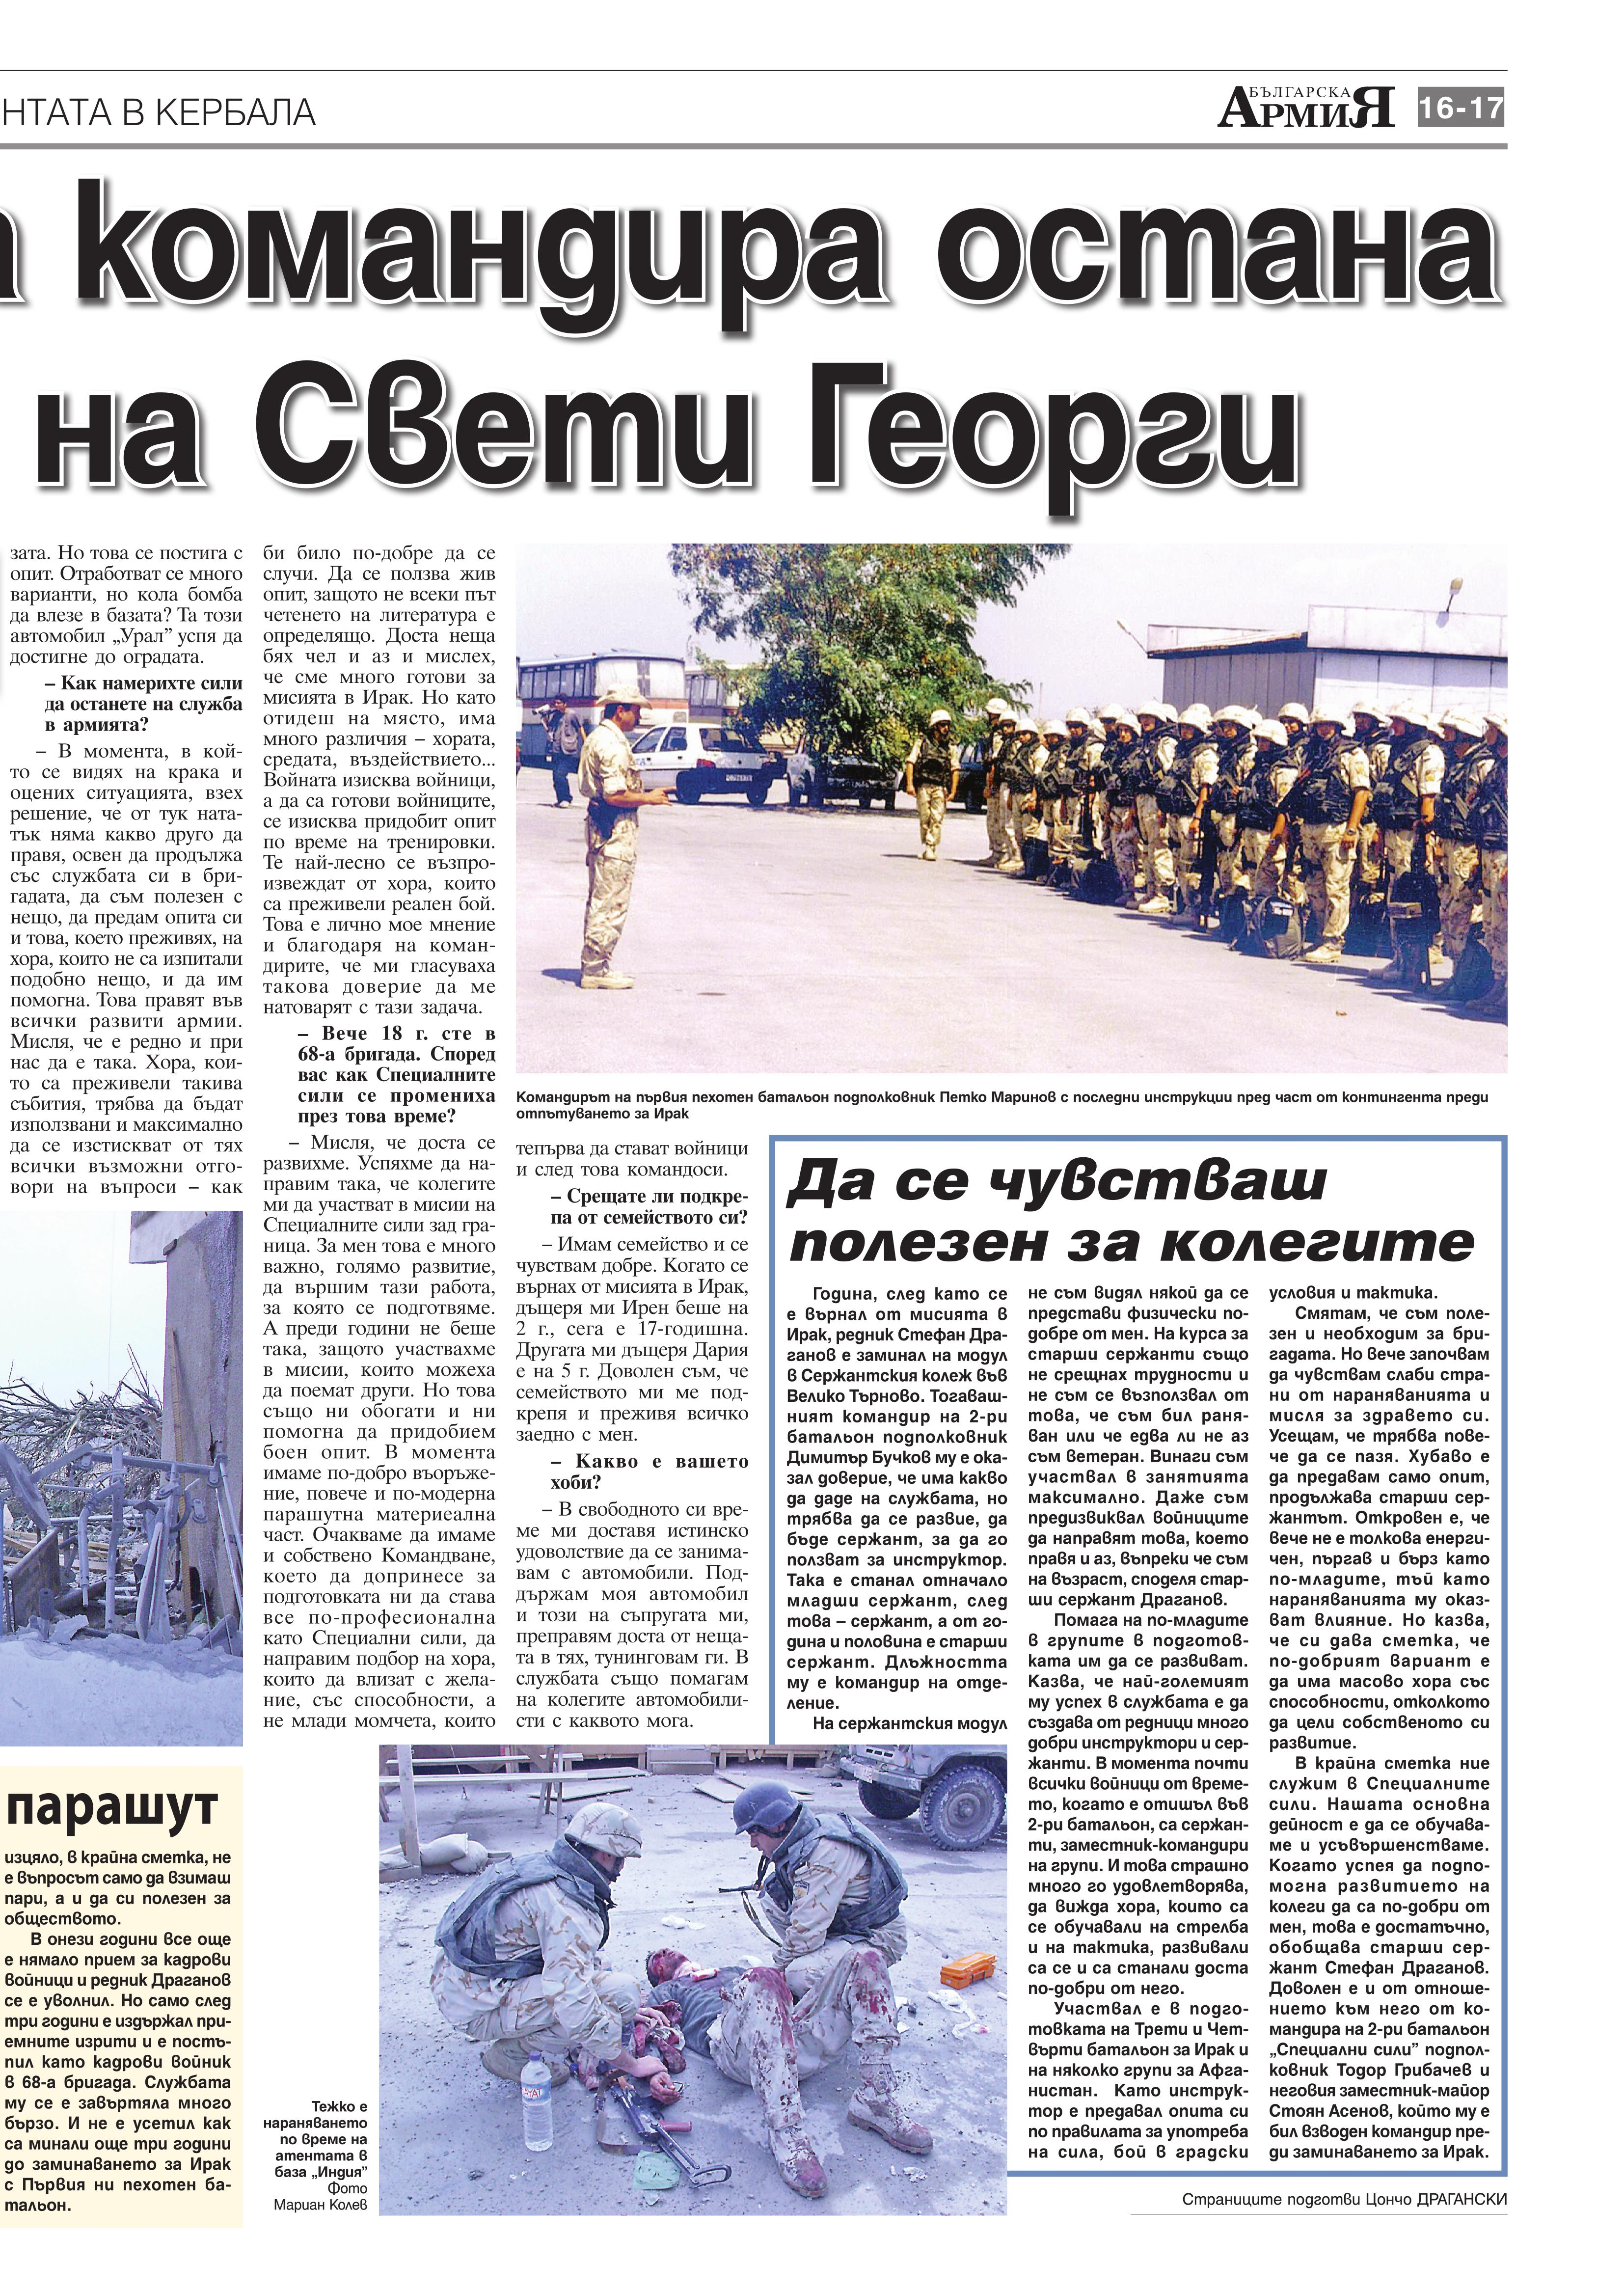 https://armymedia.bg/wp-content/uploads/2015/06/17.page1_-77.jpg